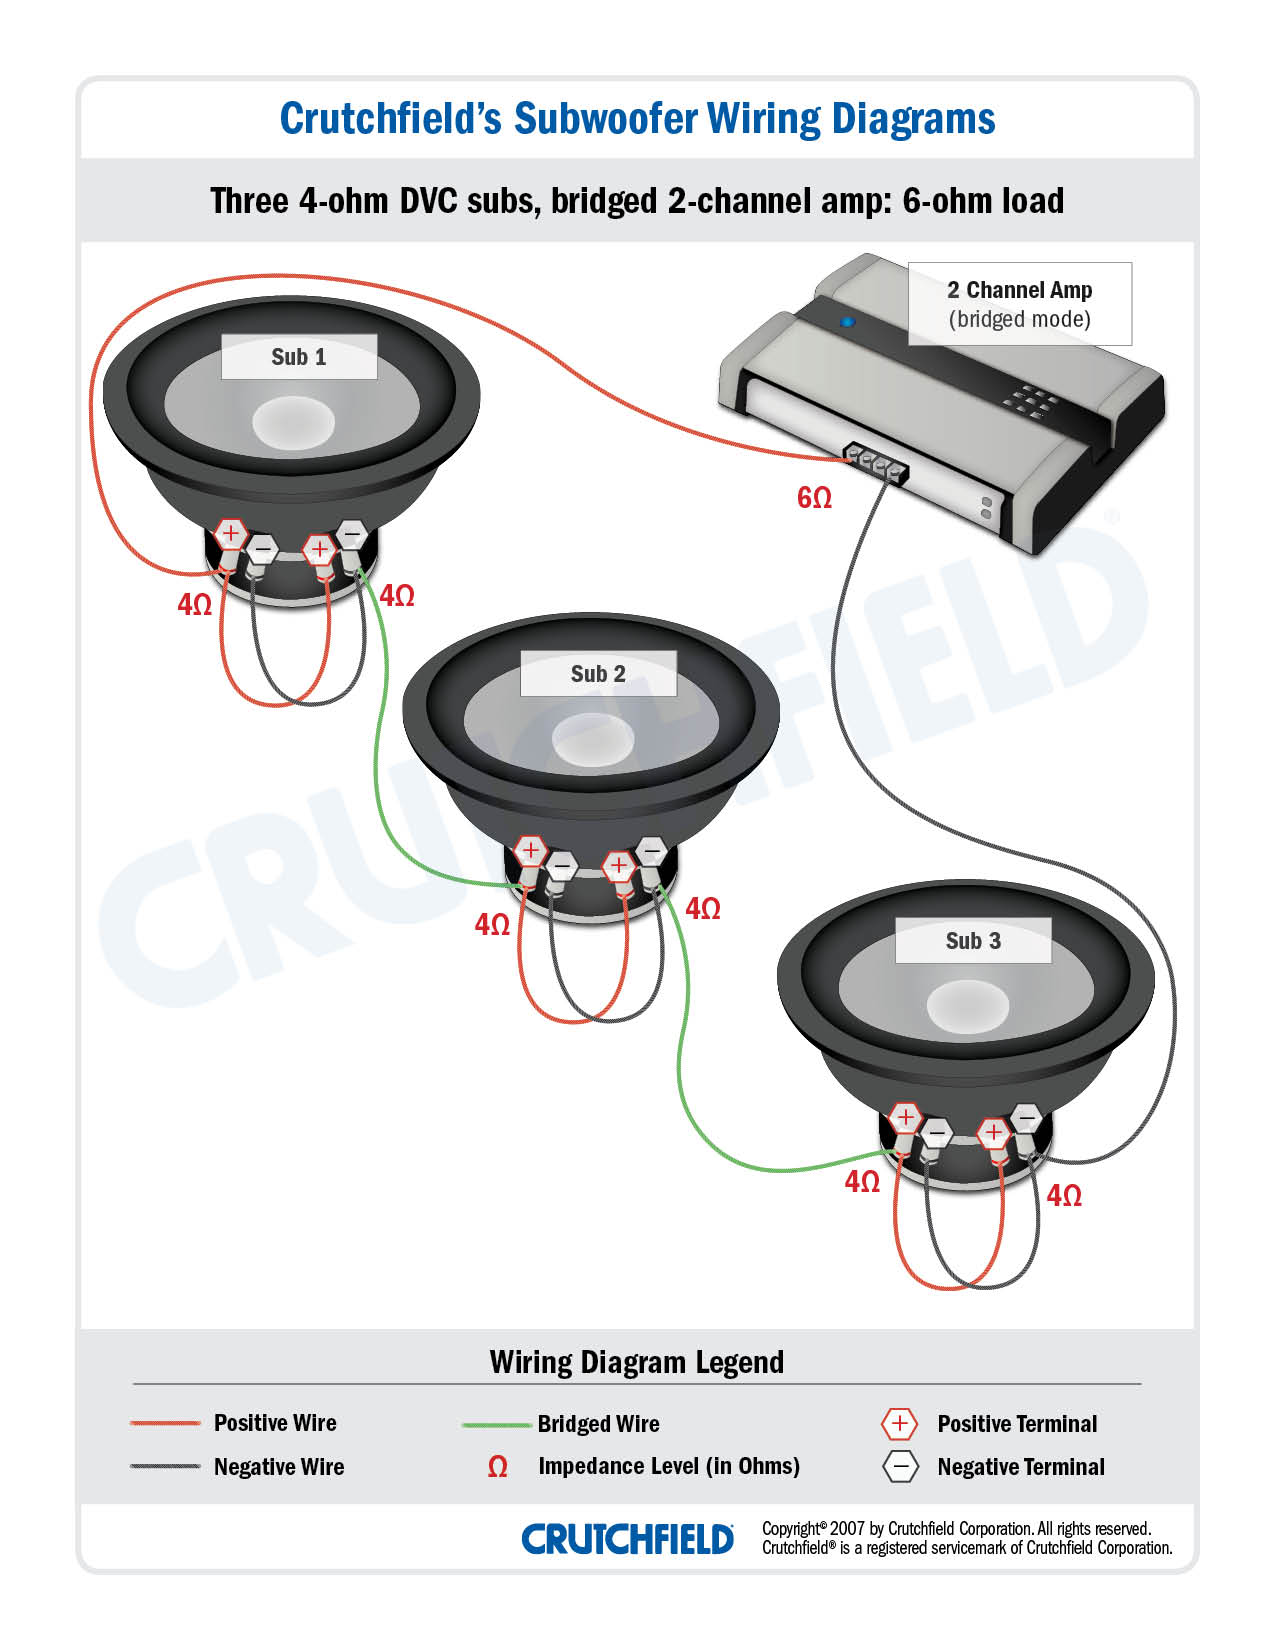 Subwoofer Wiring Diagrams How To Wire Your Subs 2 Channel Amplifier Wiring  2 Channel Amp Wiring